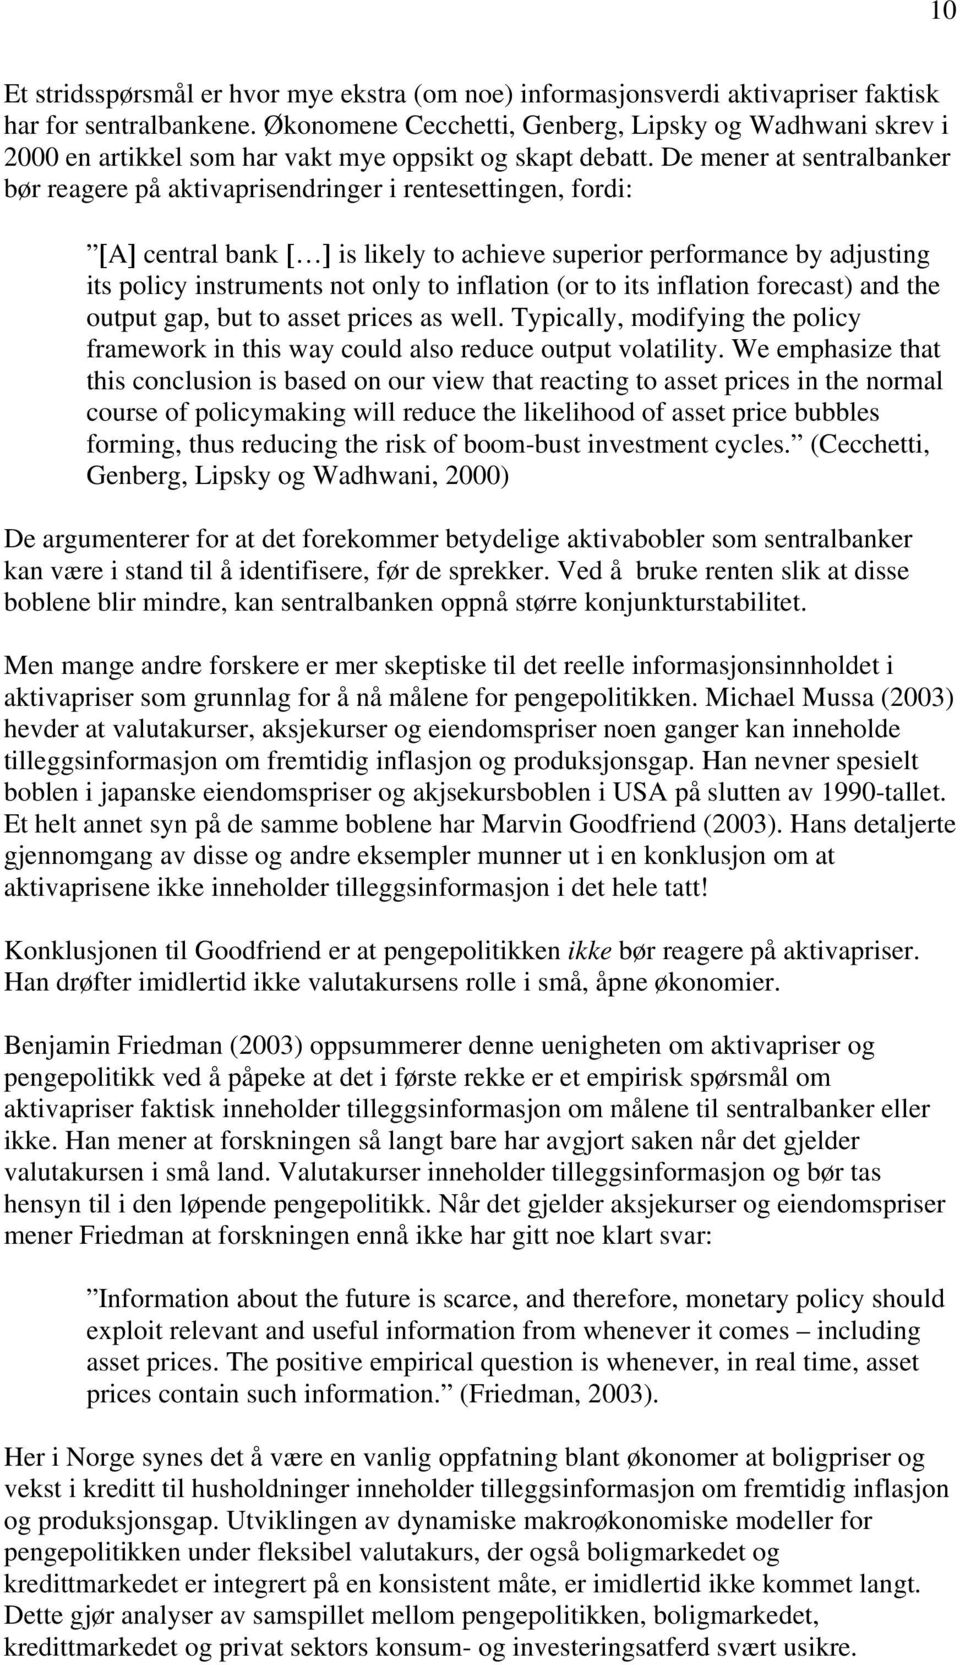 De mener at sentralbanker bør reagere på aktivaprisendringer i rentesettingen, fordi: [A] central bank [ ] is likely to achieve superior performance by adjusting its policy instruments not only to